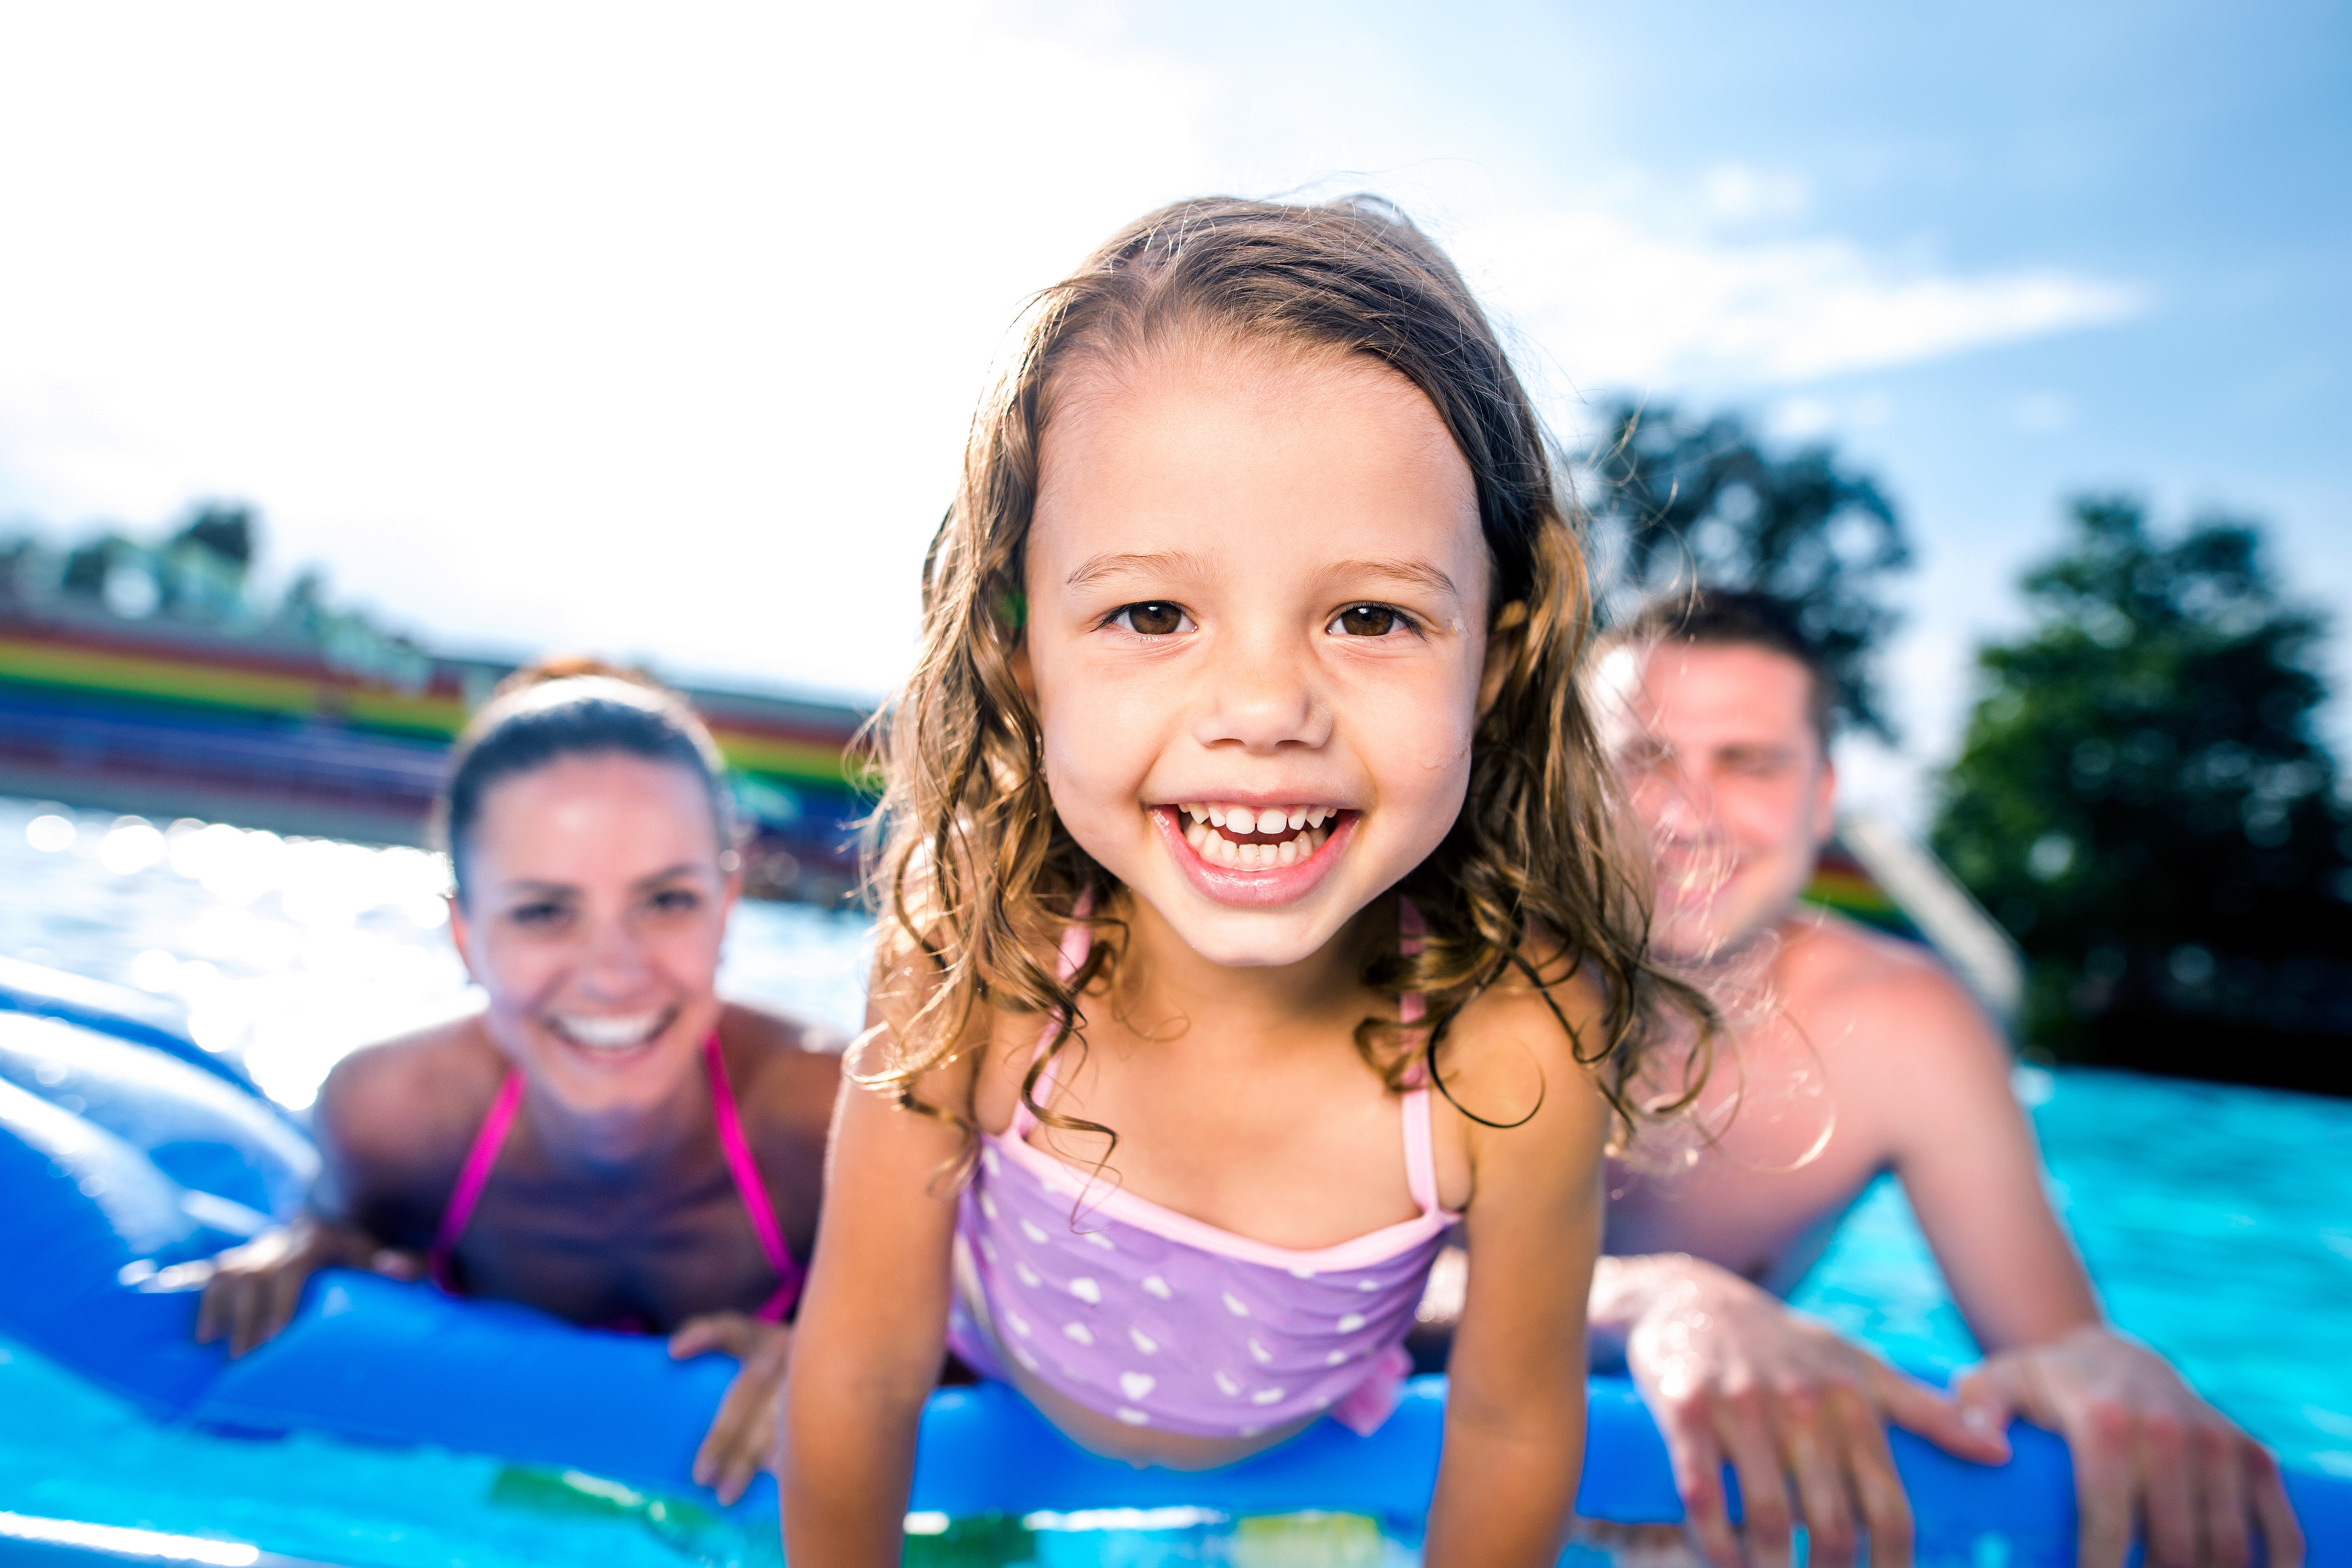 A little girl smiling while playing in the pool - Westgate Resorts